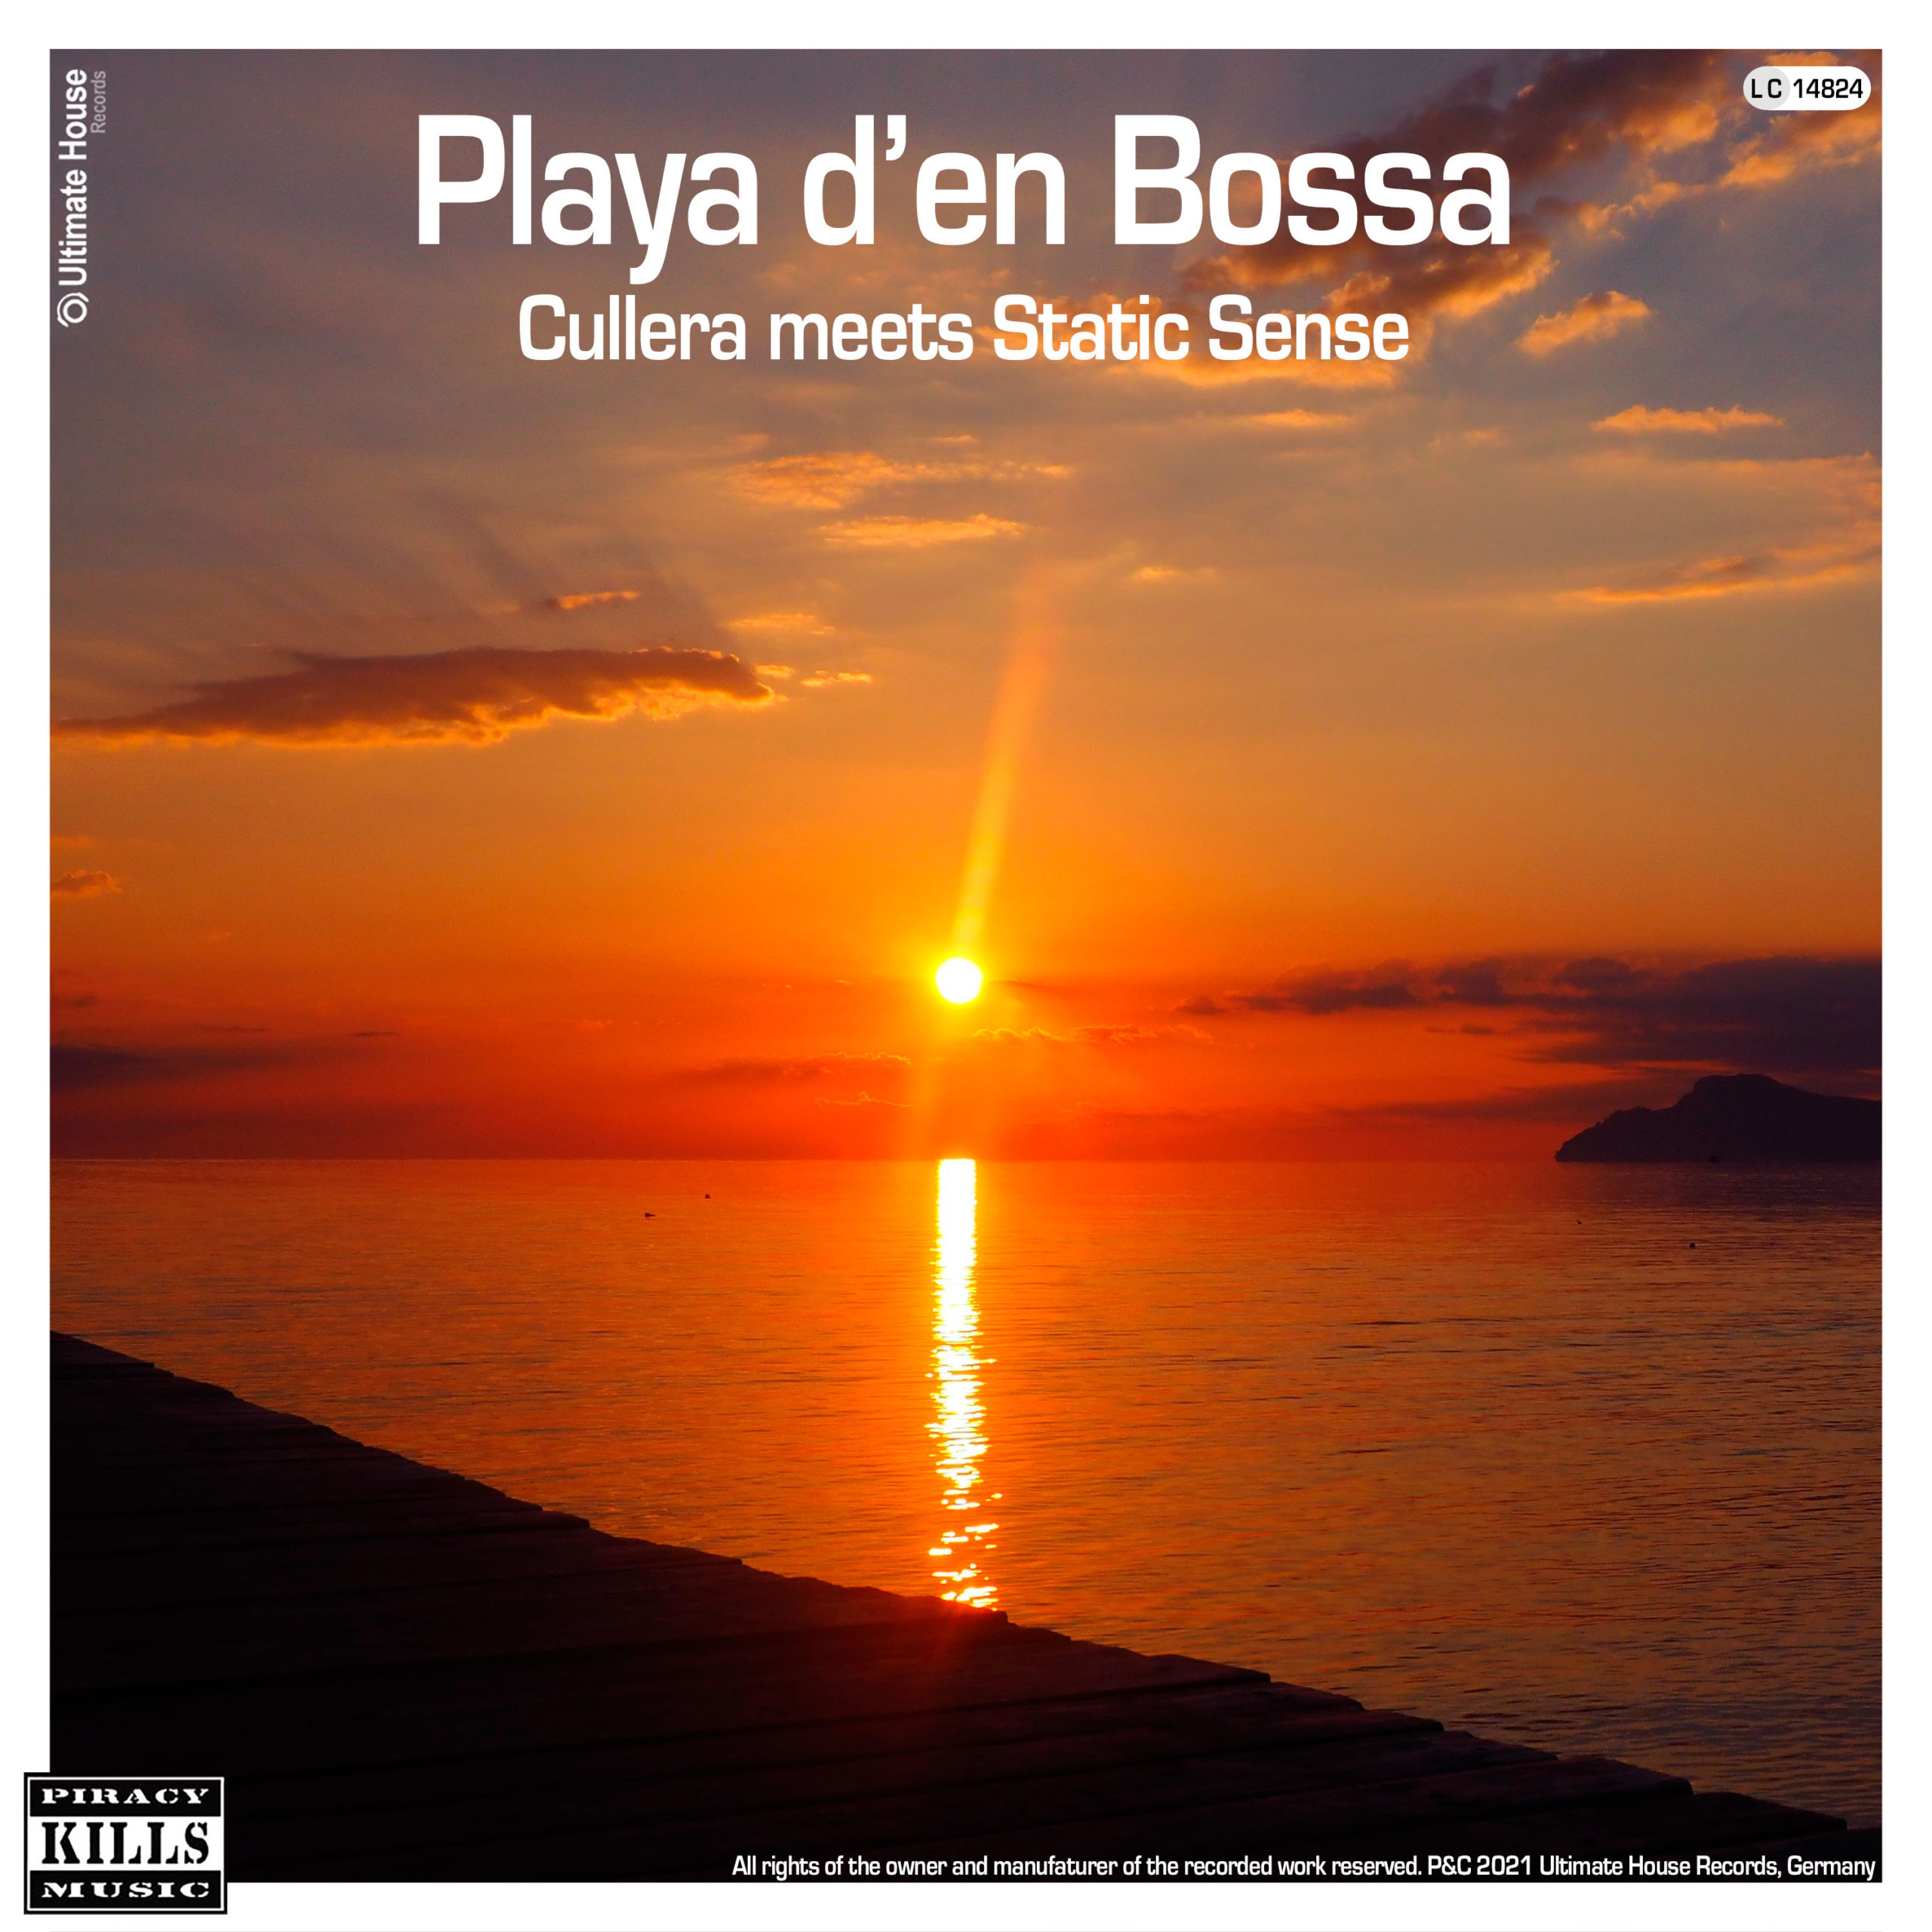 https://www.ultimate-house-records.com/wp-content/uploads/2021/07/150-Playa_den_Bossa-Cover_3000px_web-scaled.jpg